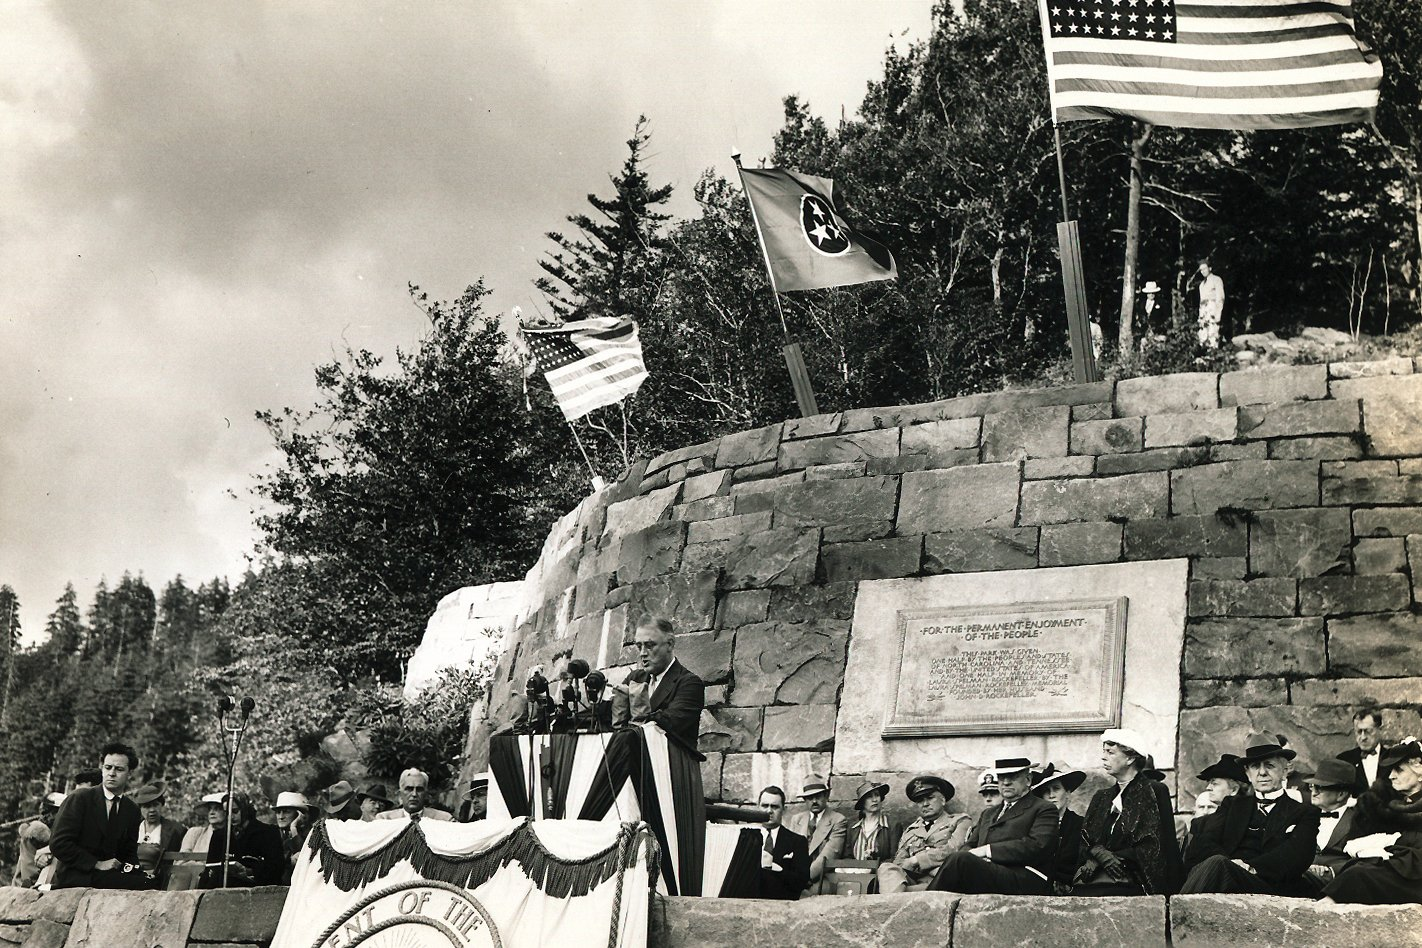 President Franklin D. Roosevelt speaking at the dedication ceremony for the Great Smoky Mountains National Park.